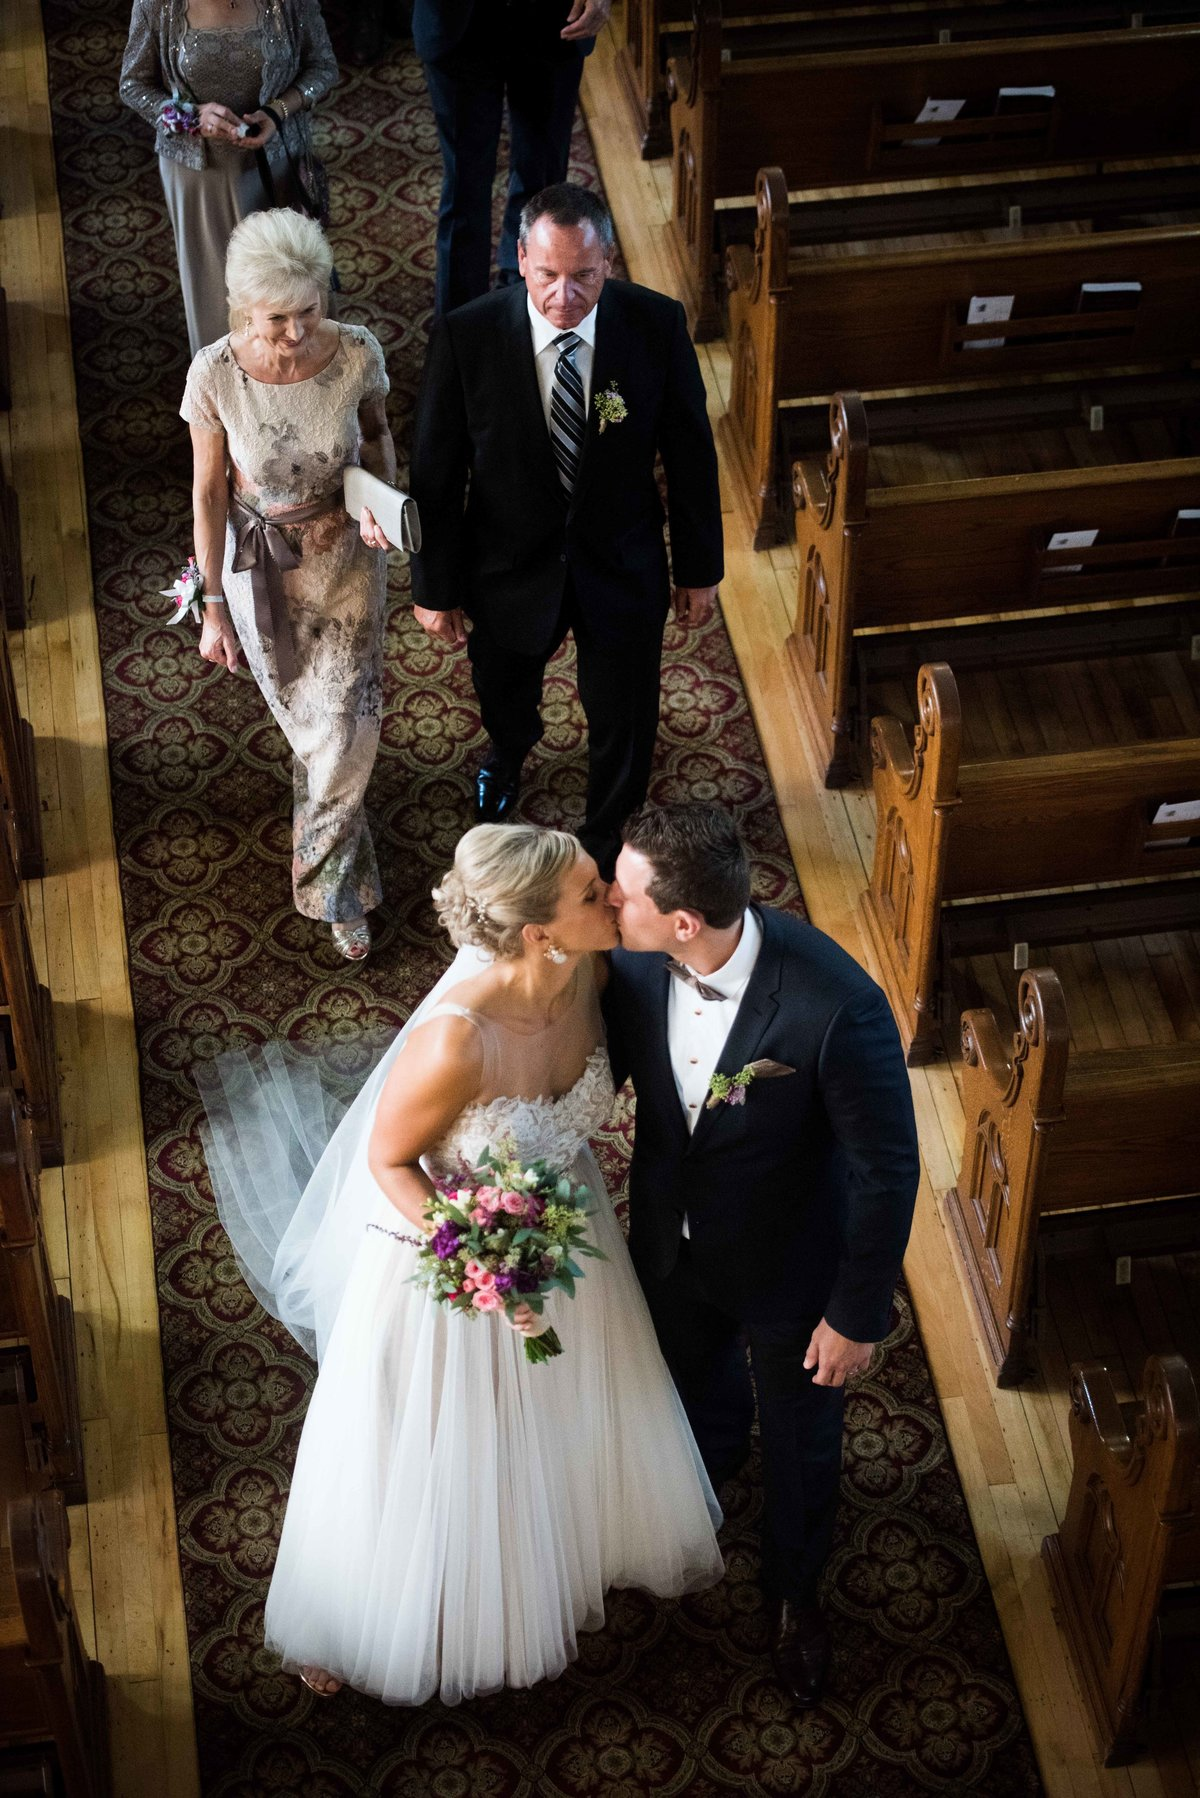 Bride and groom kiss in church aisle, Chicago IL.